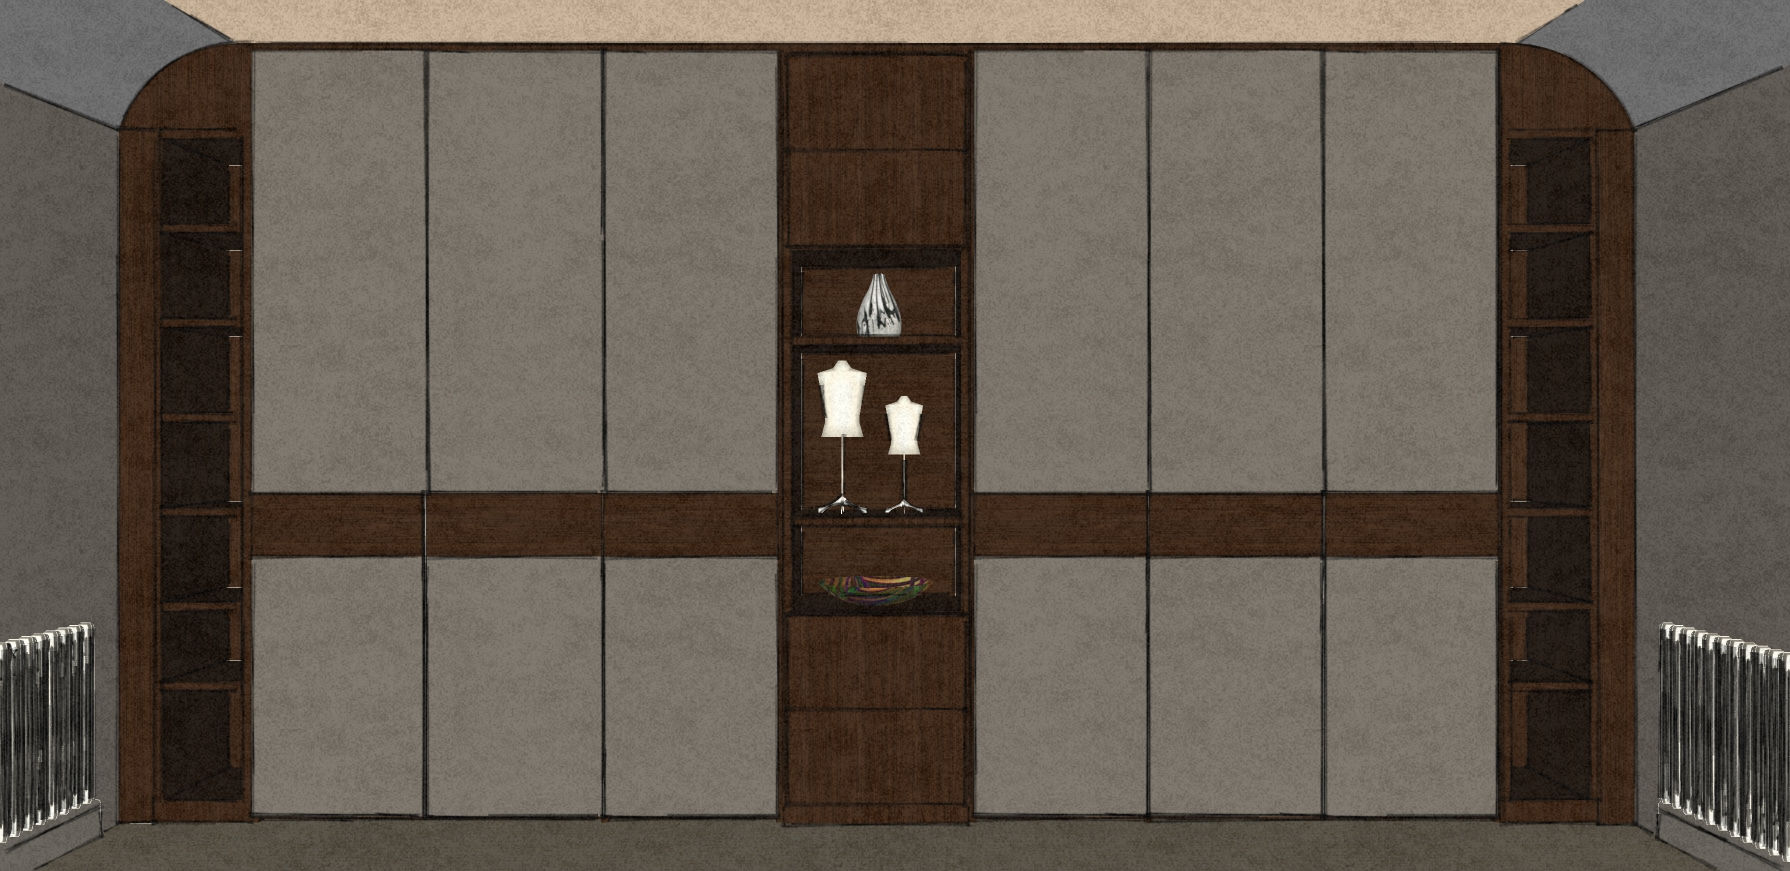 Sarah and Ed initial bedroom design a elevation d.jpg